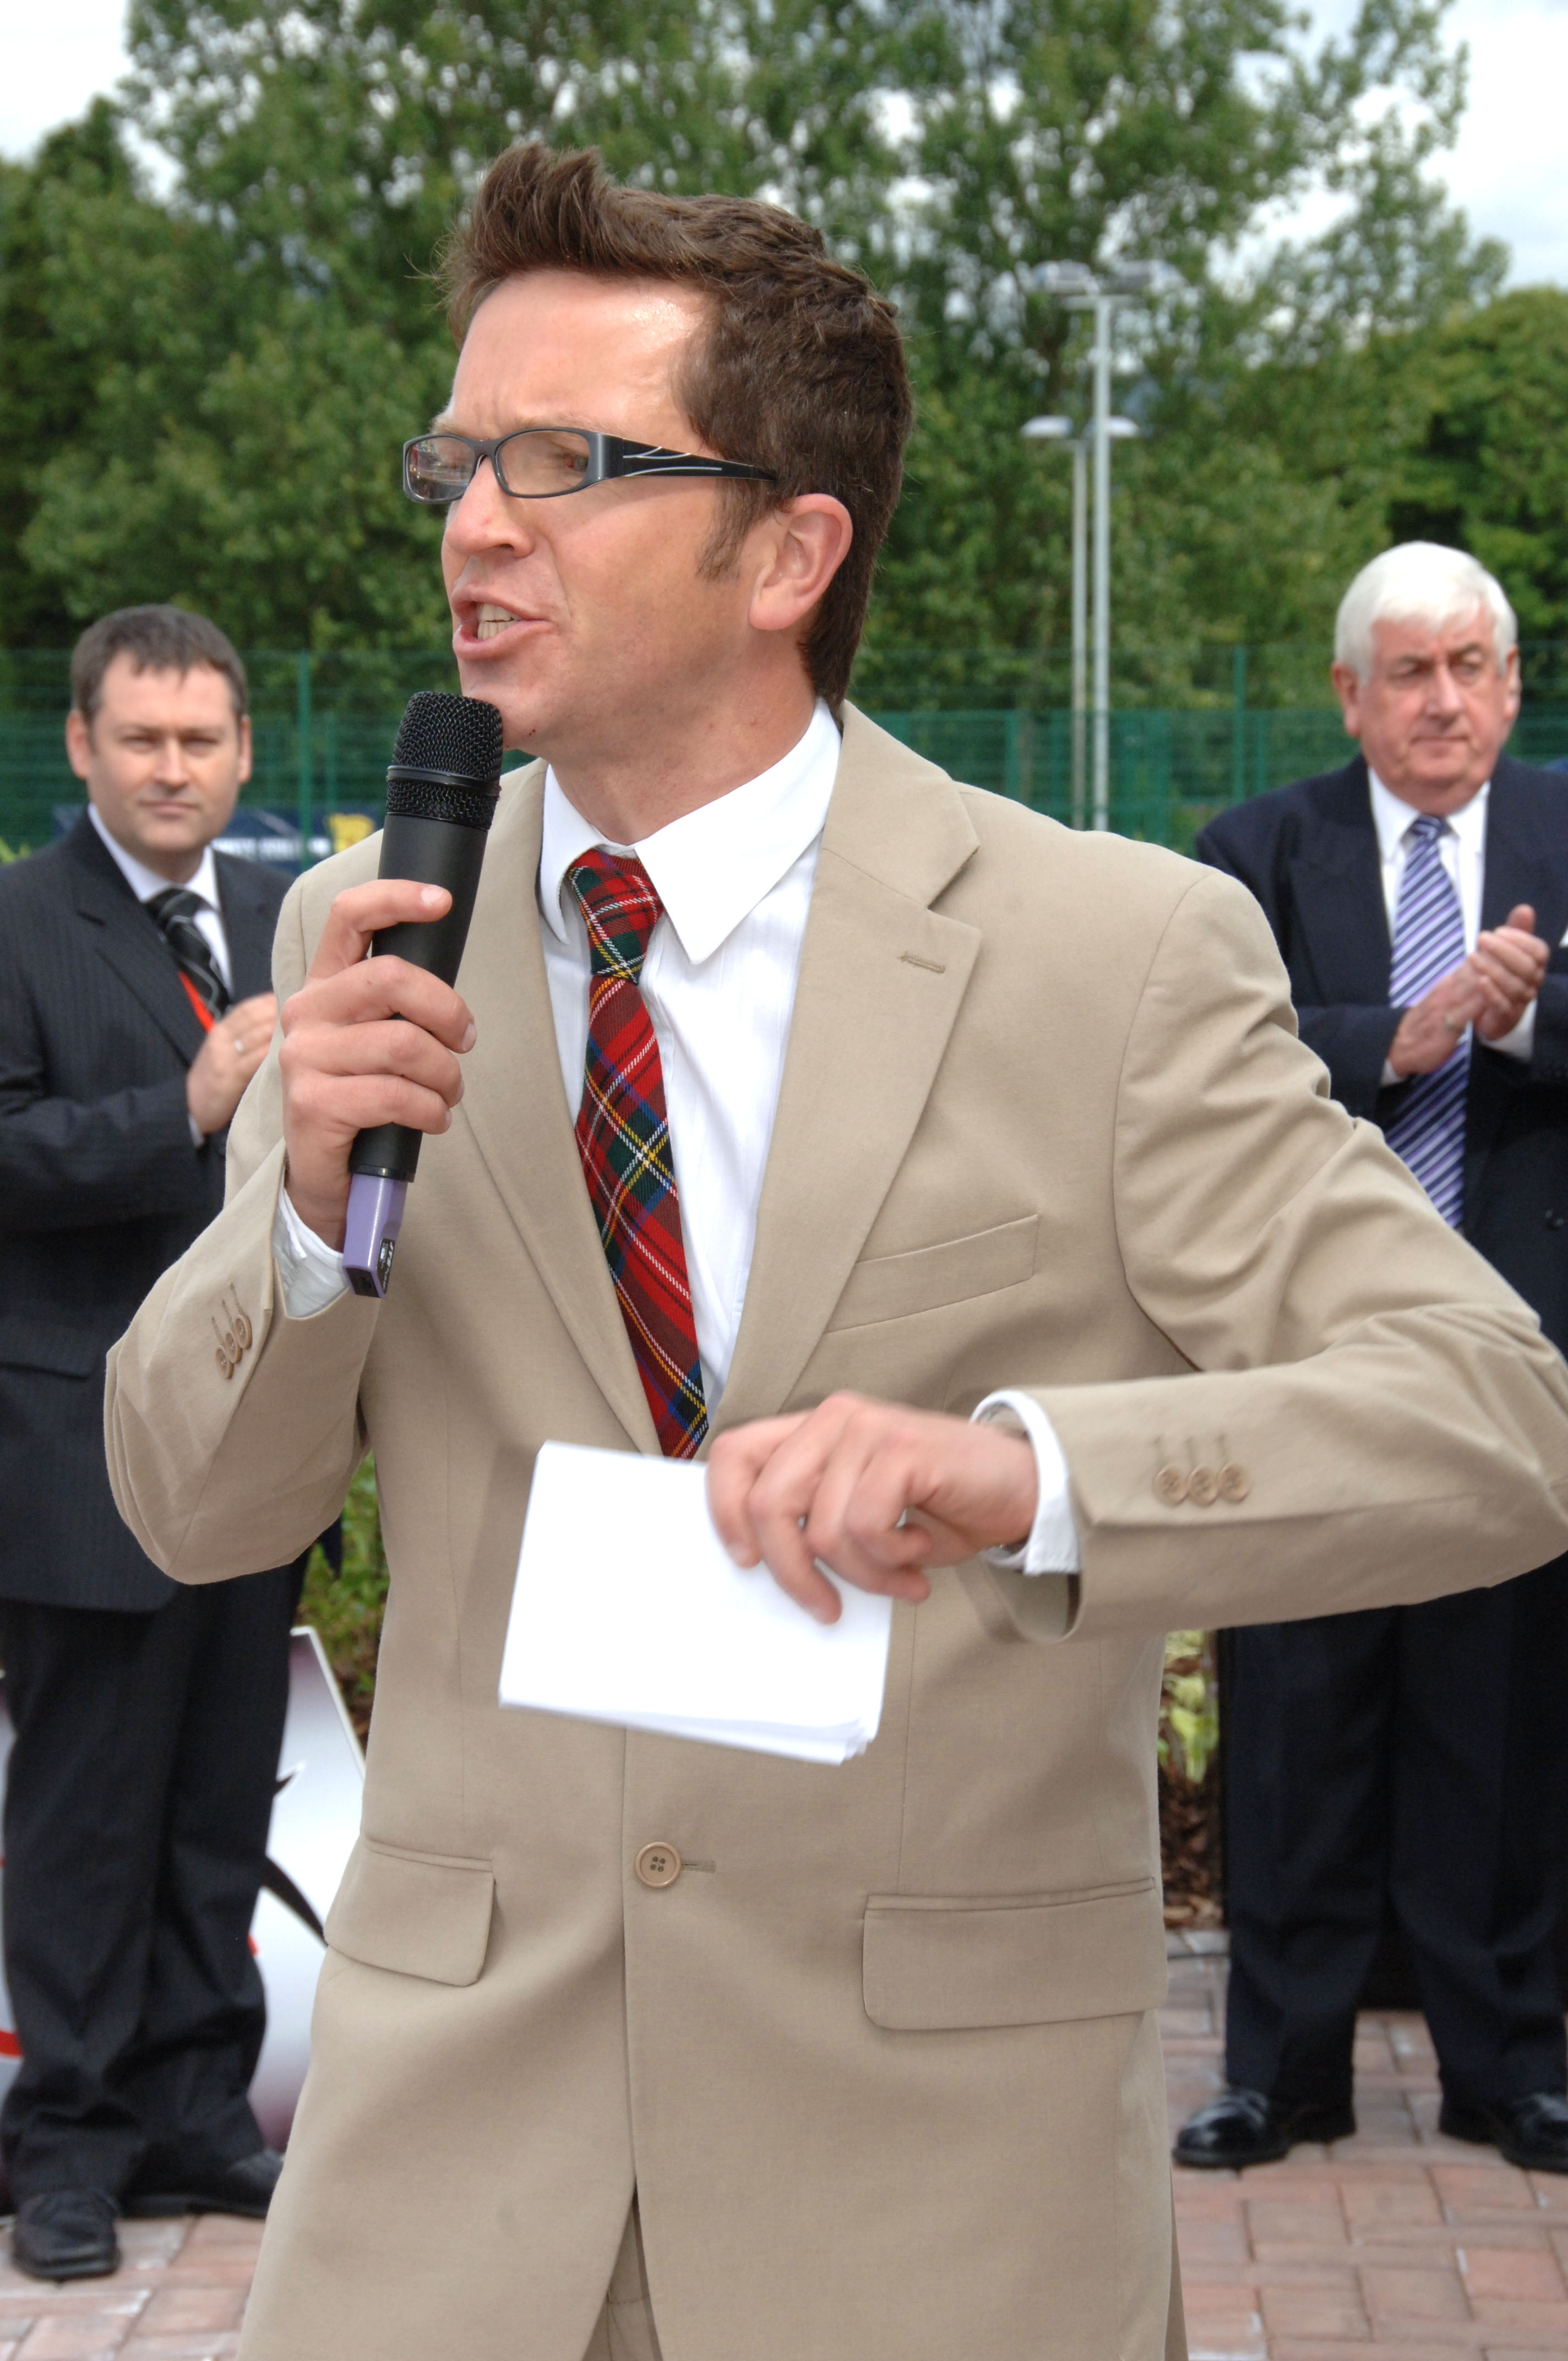 Event Host 2005